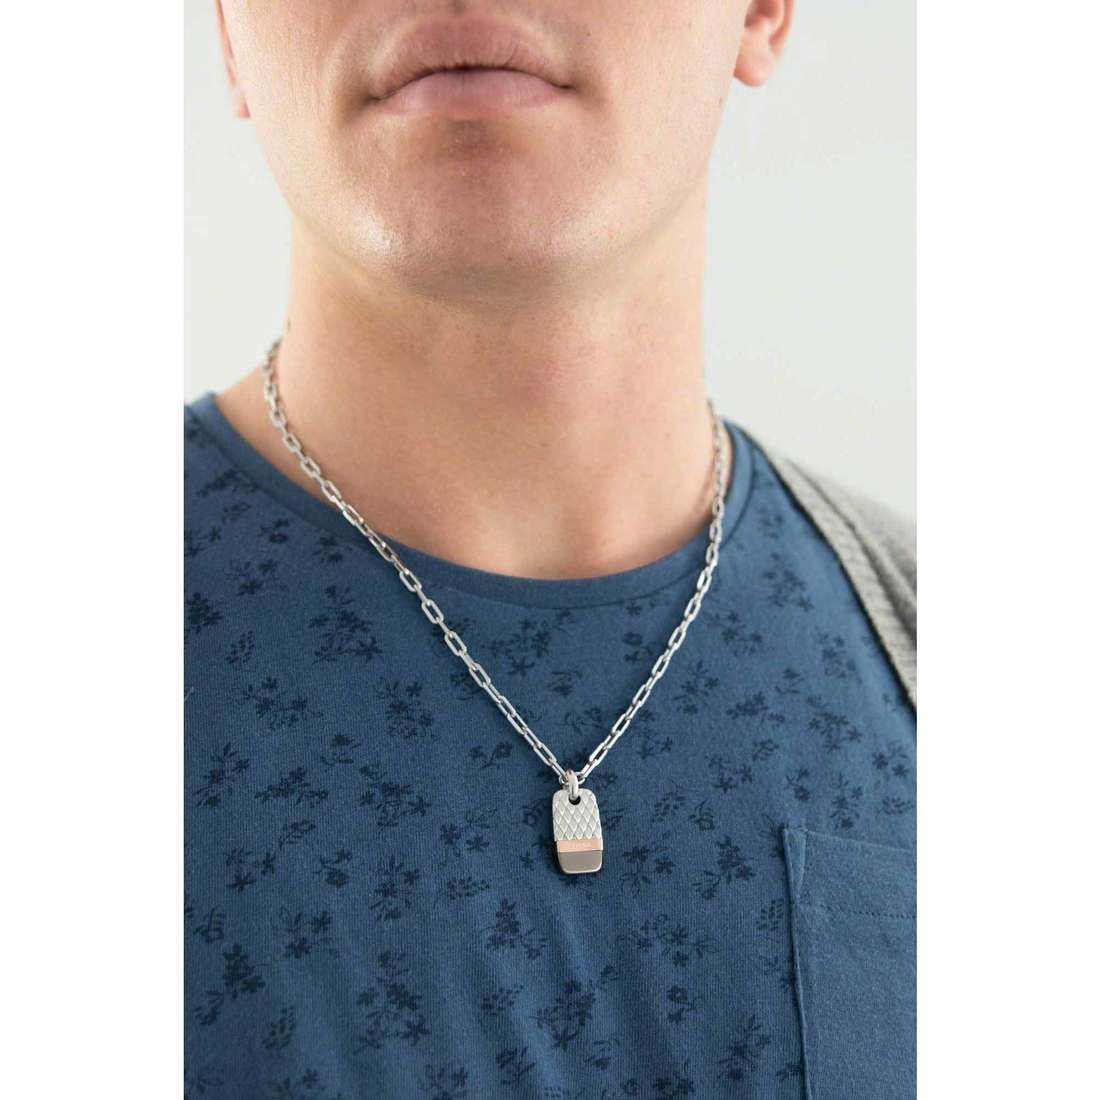 Fossil colliers Holiday 15 homme JF02084998 indosso